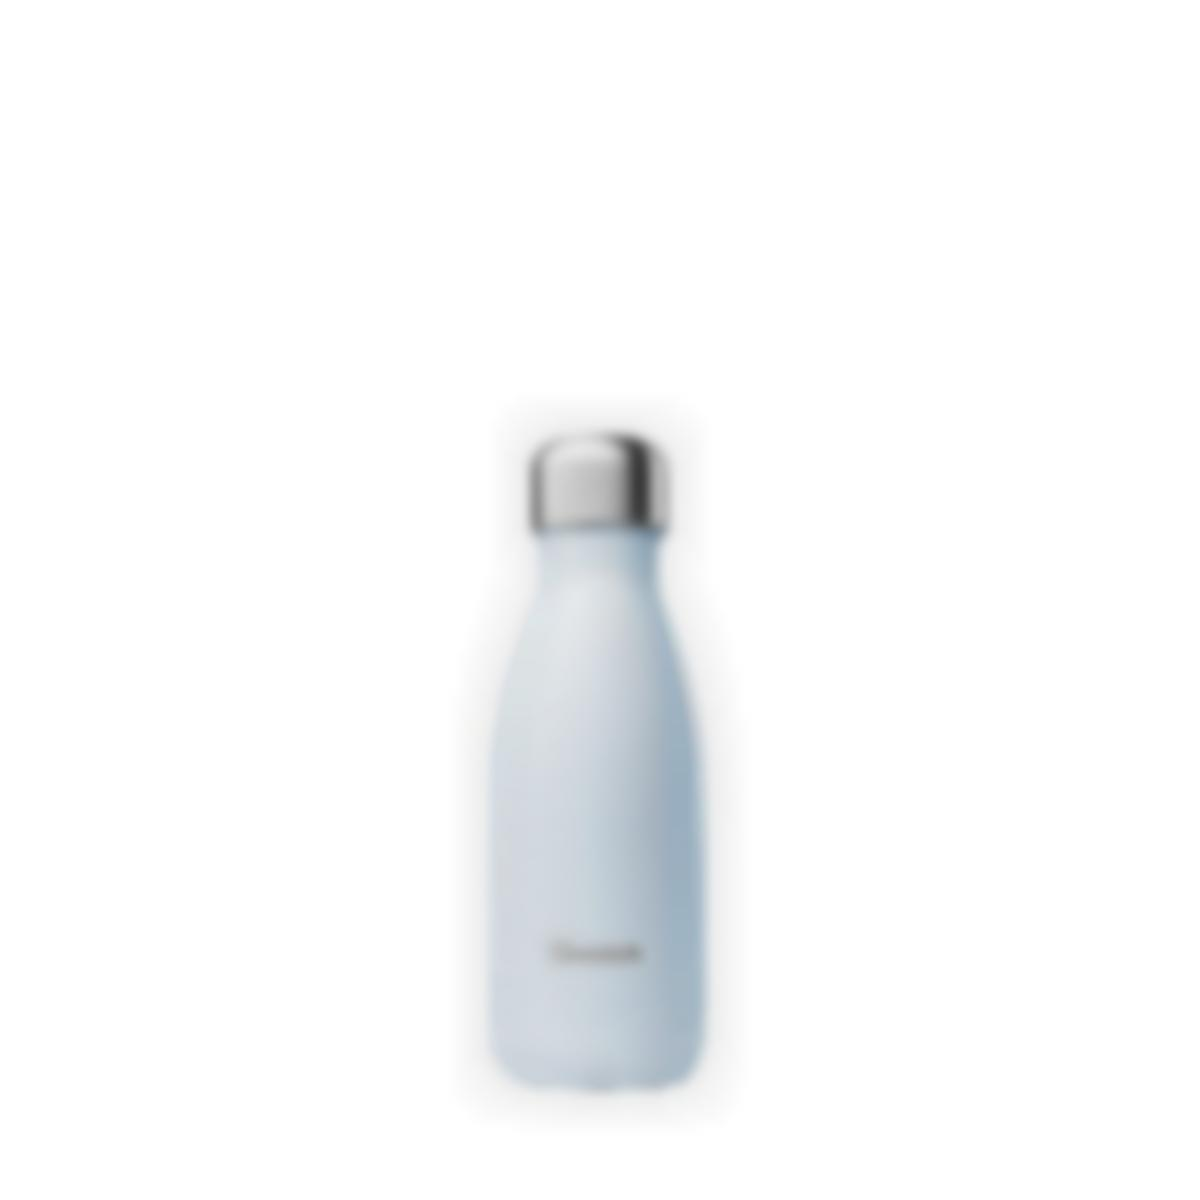 Gourde bouteille isotherme - Pastel Bleu - 260ml - Qwetch